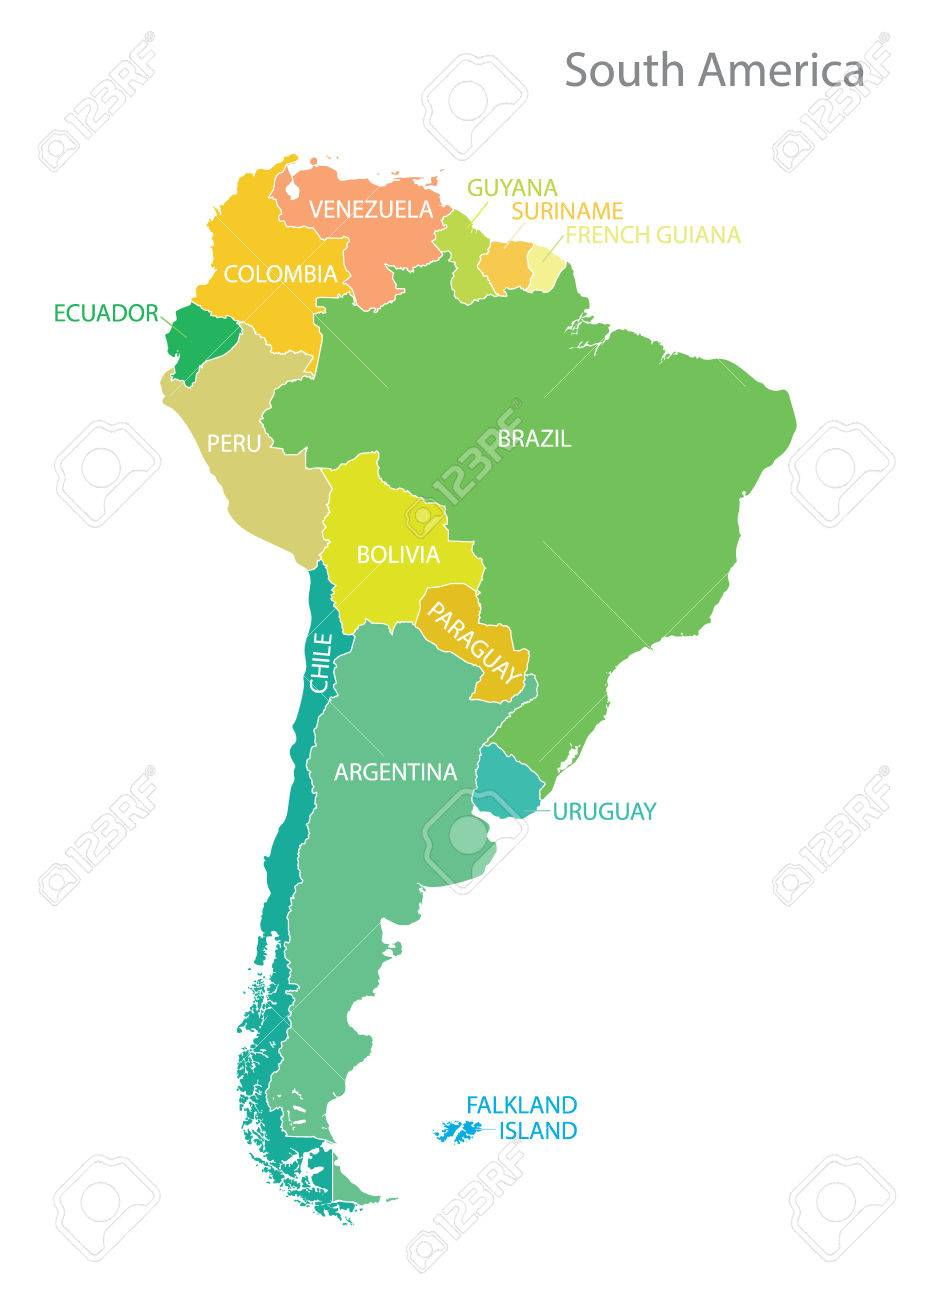 South America Map With Names, Vector. Royalty Free Cliparts